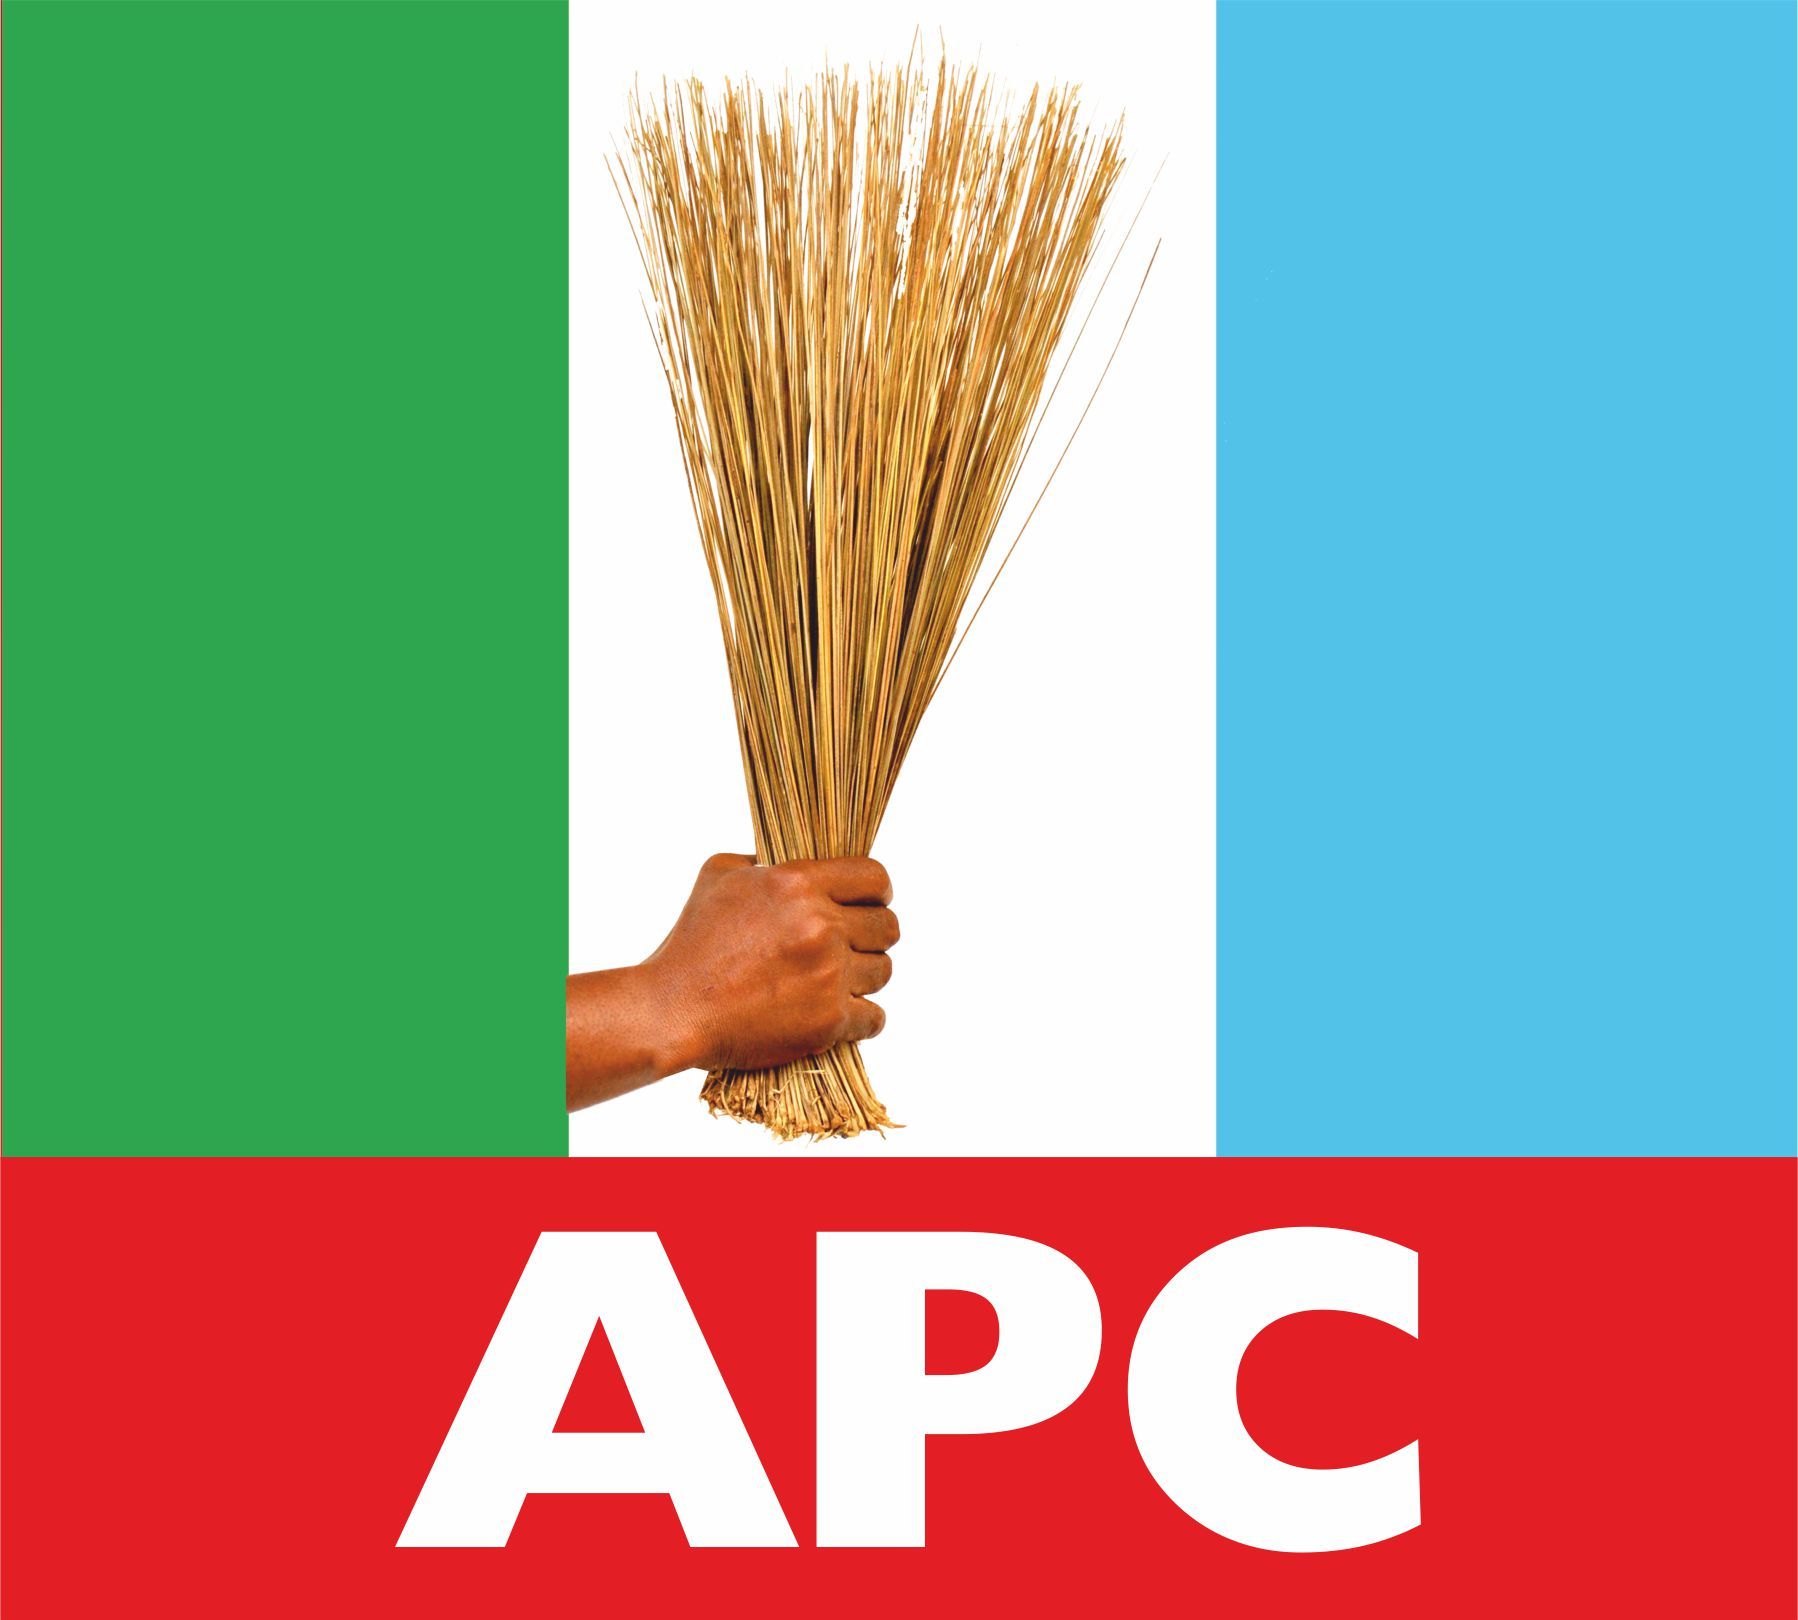 LG Primaries Fallout: Dissension In The Parties